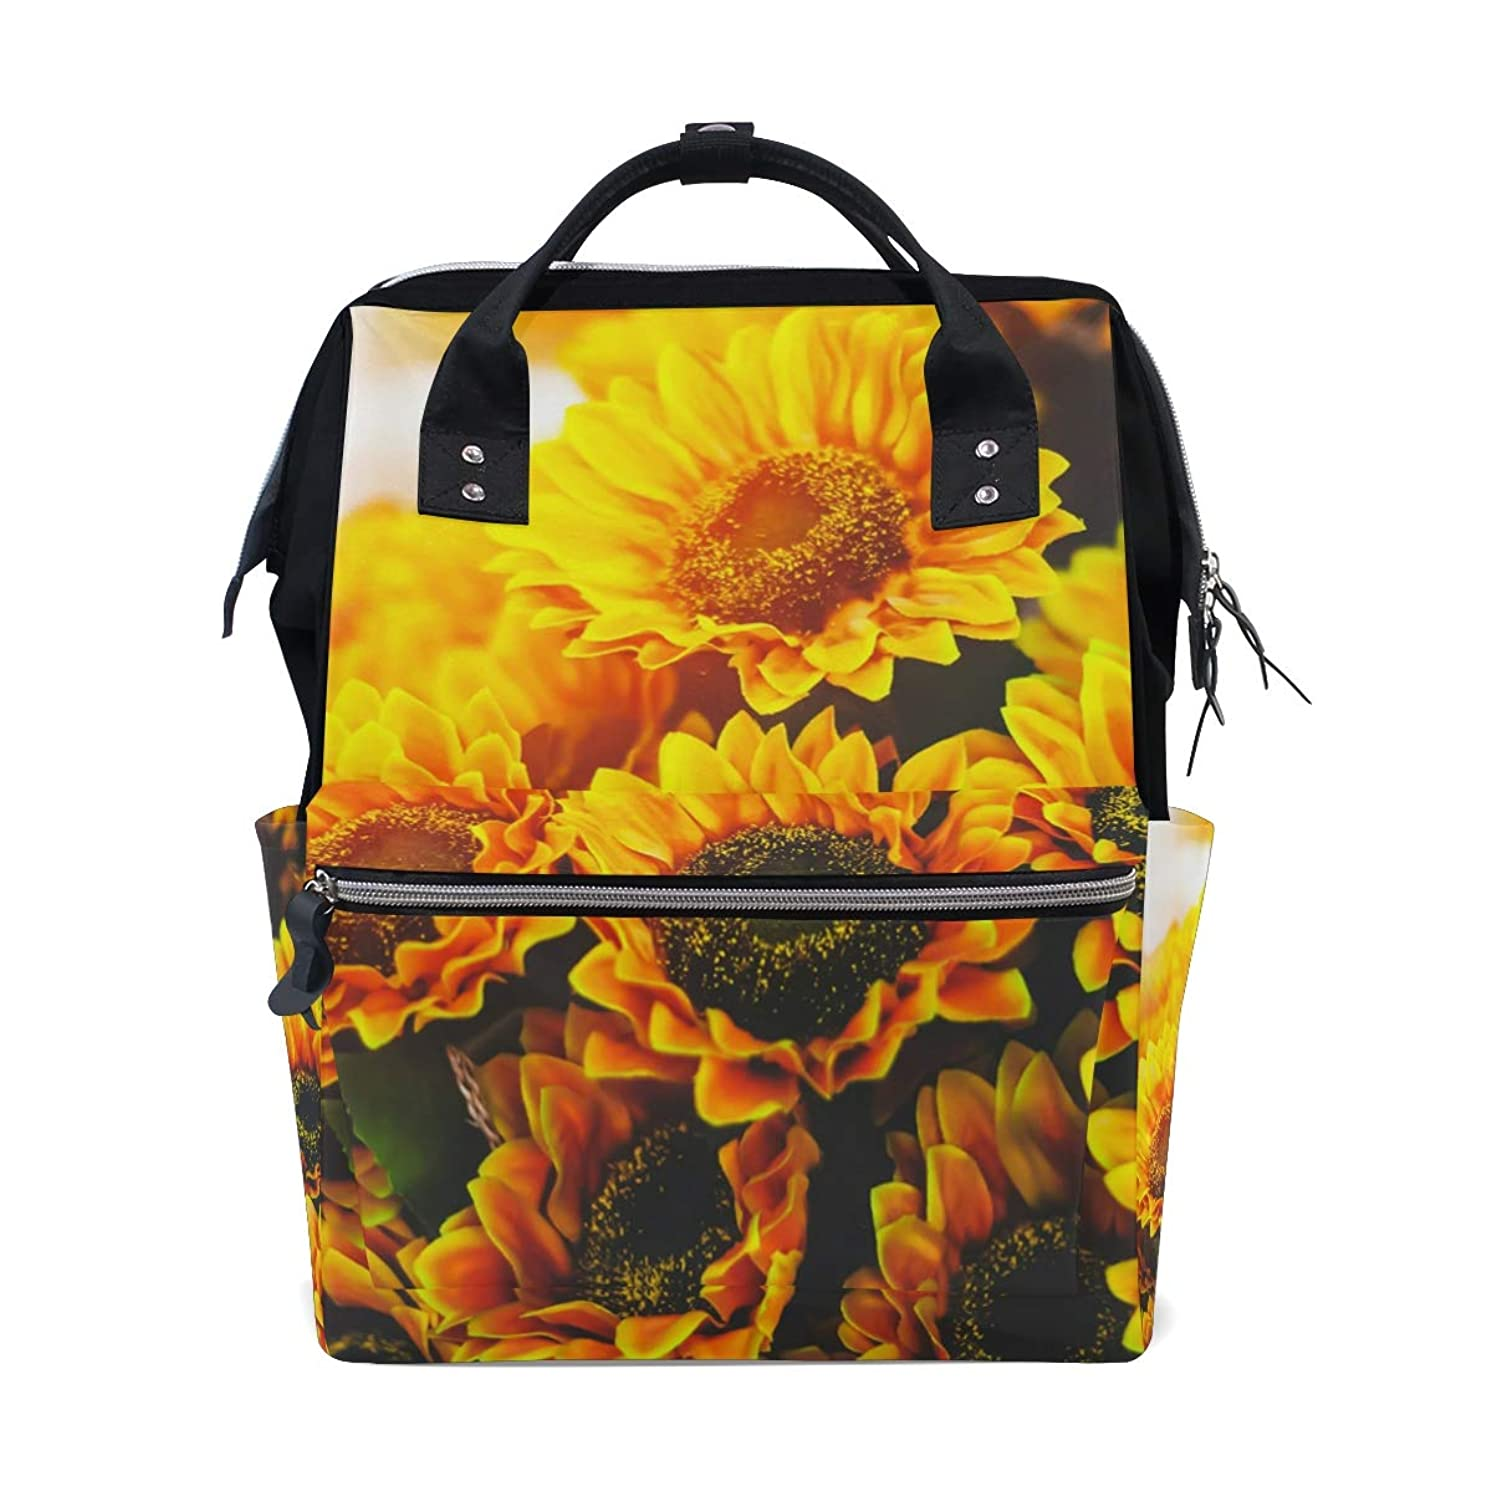 Vintage Floral Sunflowers Sunset School Backpack Large Capacity Mummy Bags Laptop Handbag Casual Travel Rucksack Satchel For Women Men Adult Teen Children